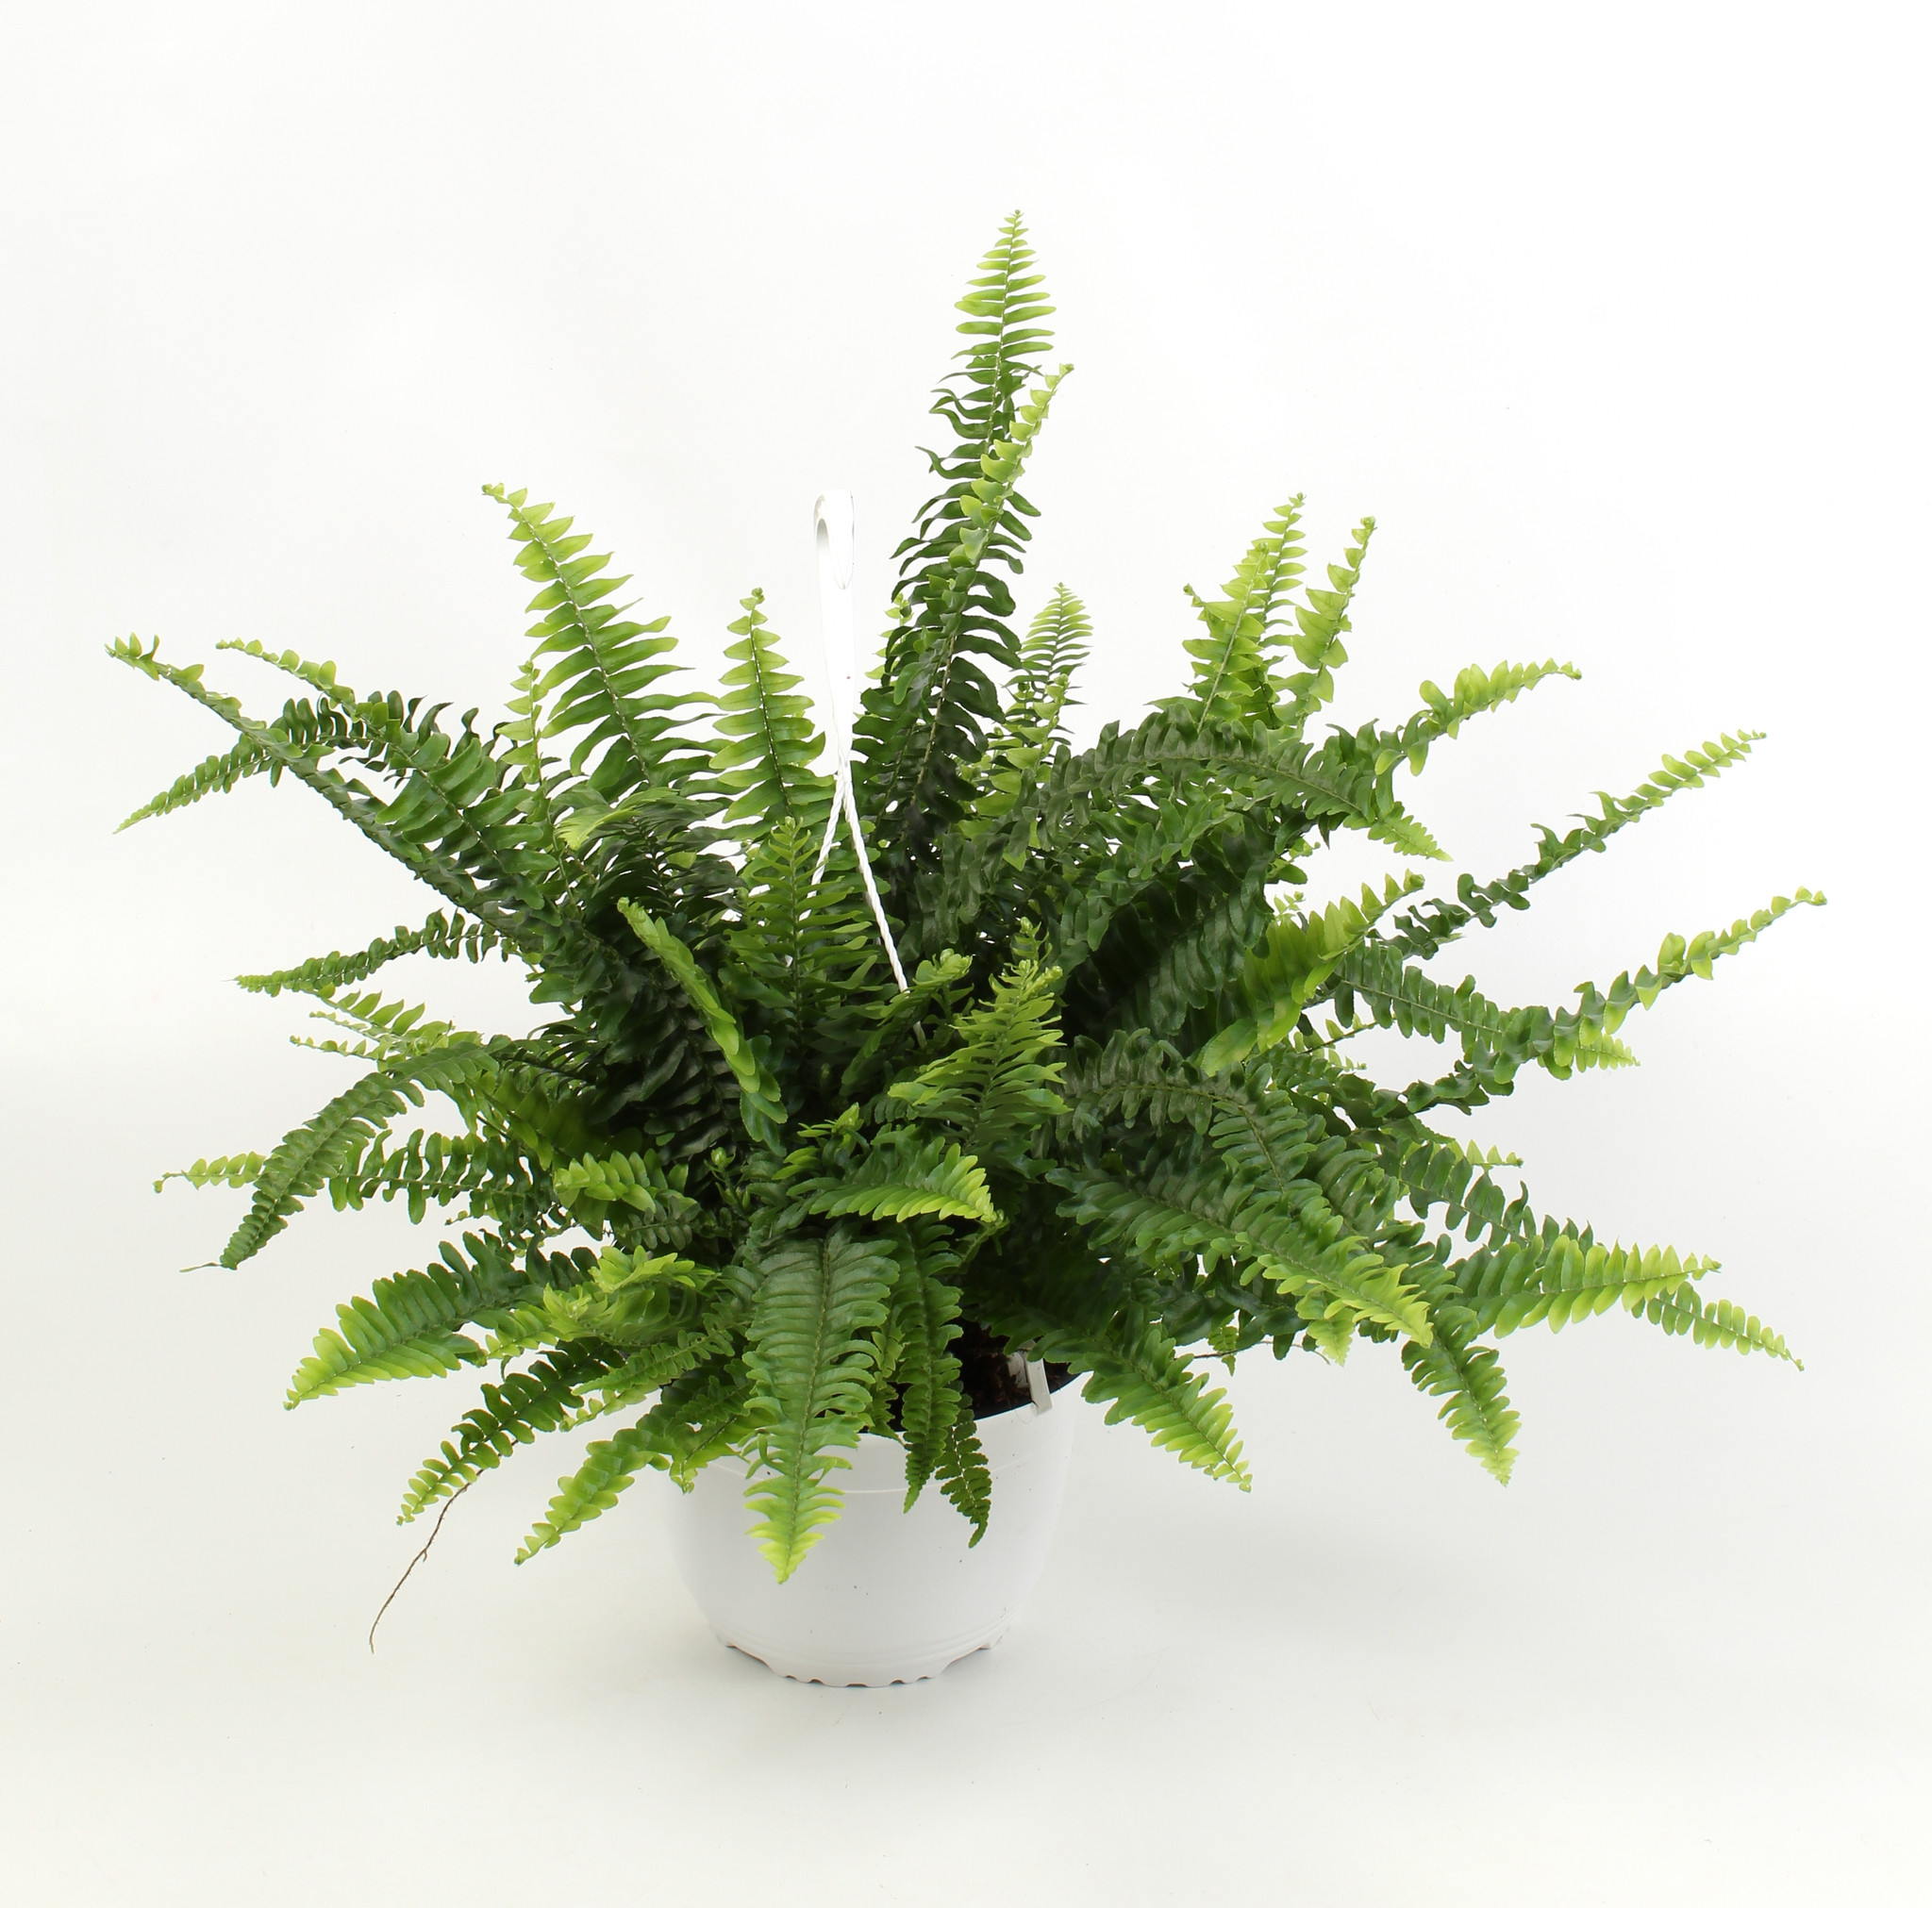 Boston Fern Nephrolepis in a hanging pot - 50-60m wide pot size 18cm